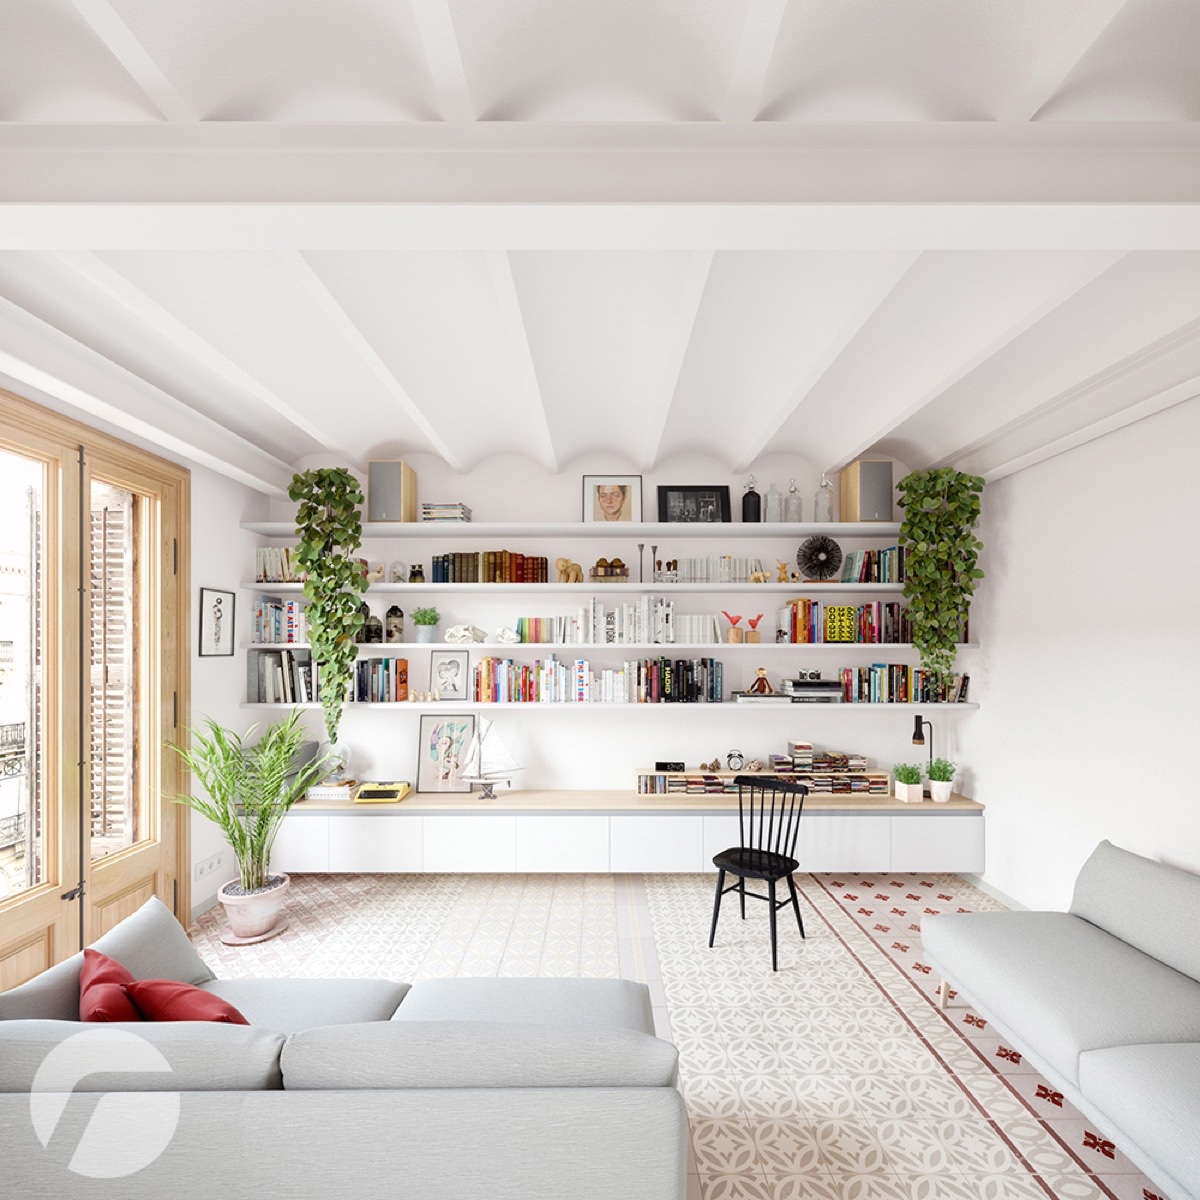 Interior Design Inspiration 10 Stunning Apartments That Show Off The Beauty Of Nordic Interior